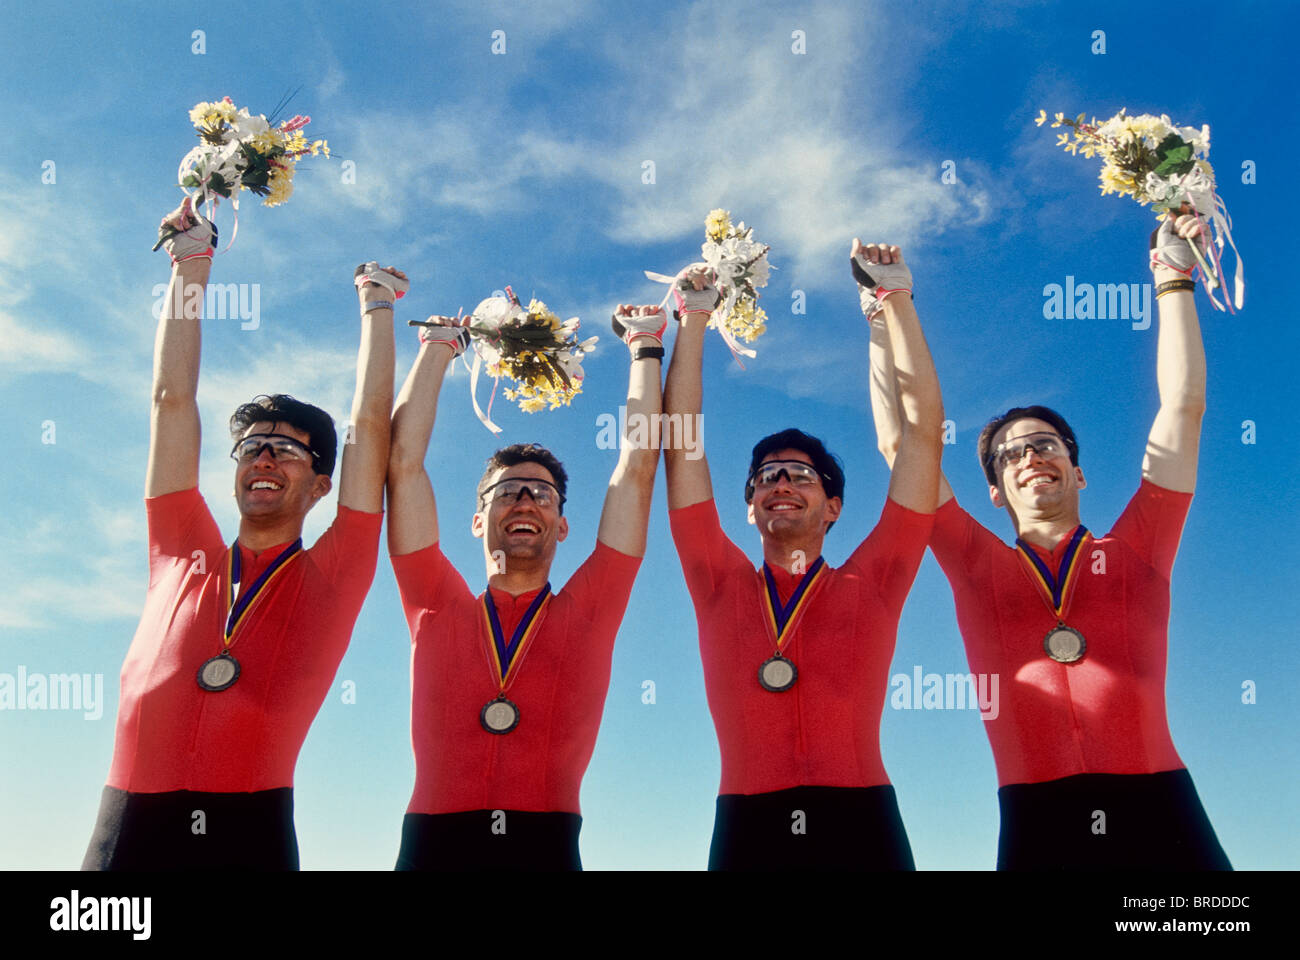 Mens cycling team on the podium with their gold medals. - Stock Image